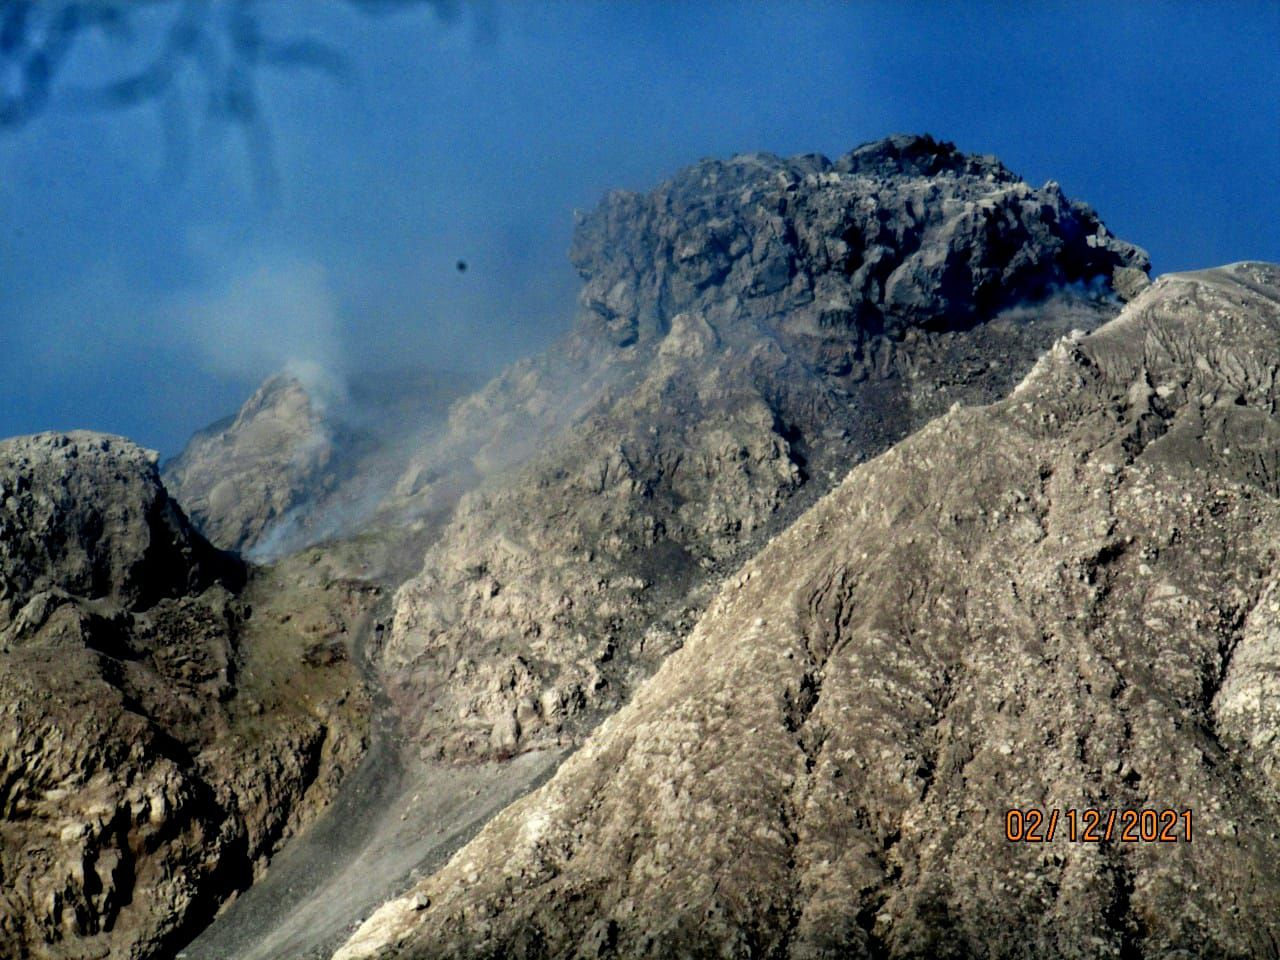 Sinabung - morphological change at the top of the dome - photo Sadrah Peranginangin 12.02.2021 - one click to enlarge